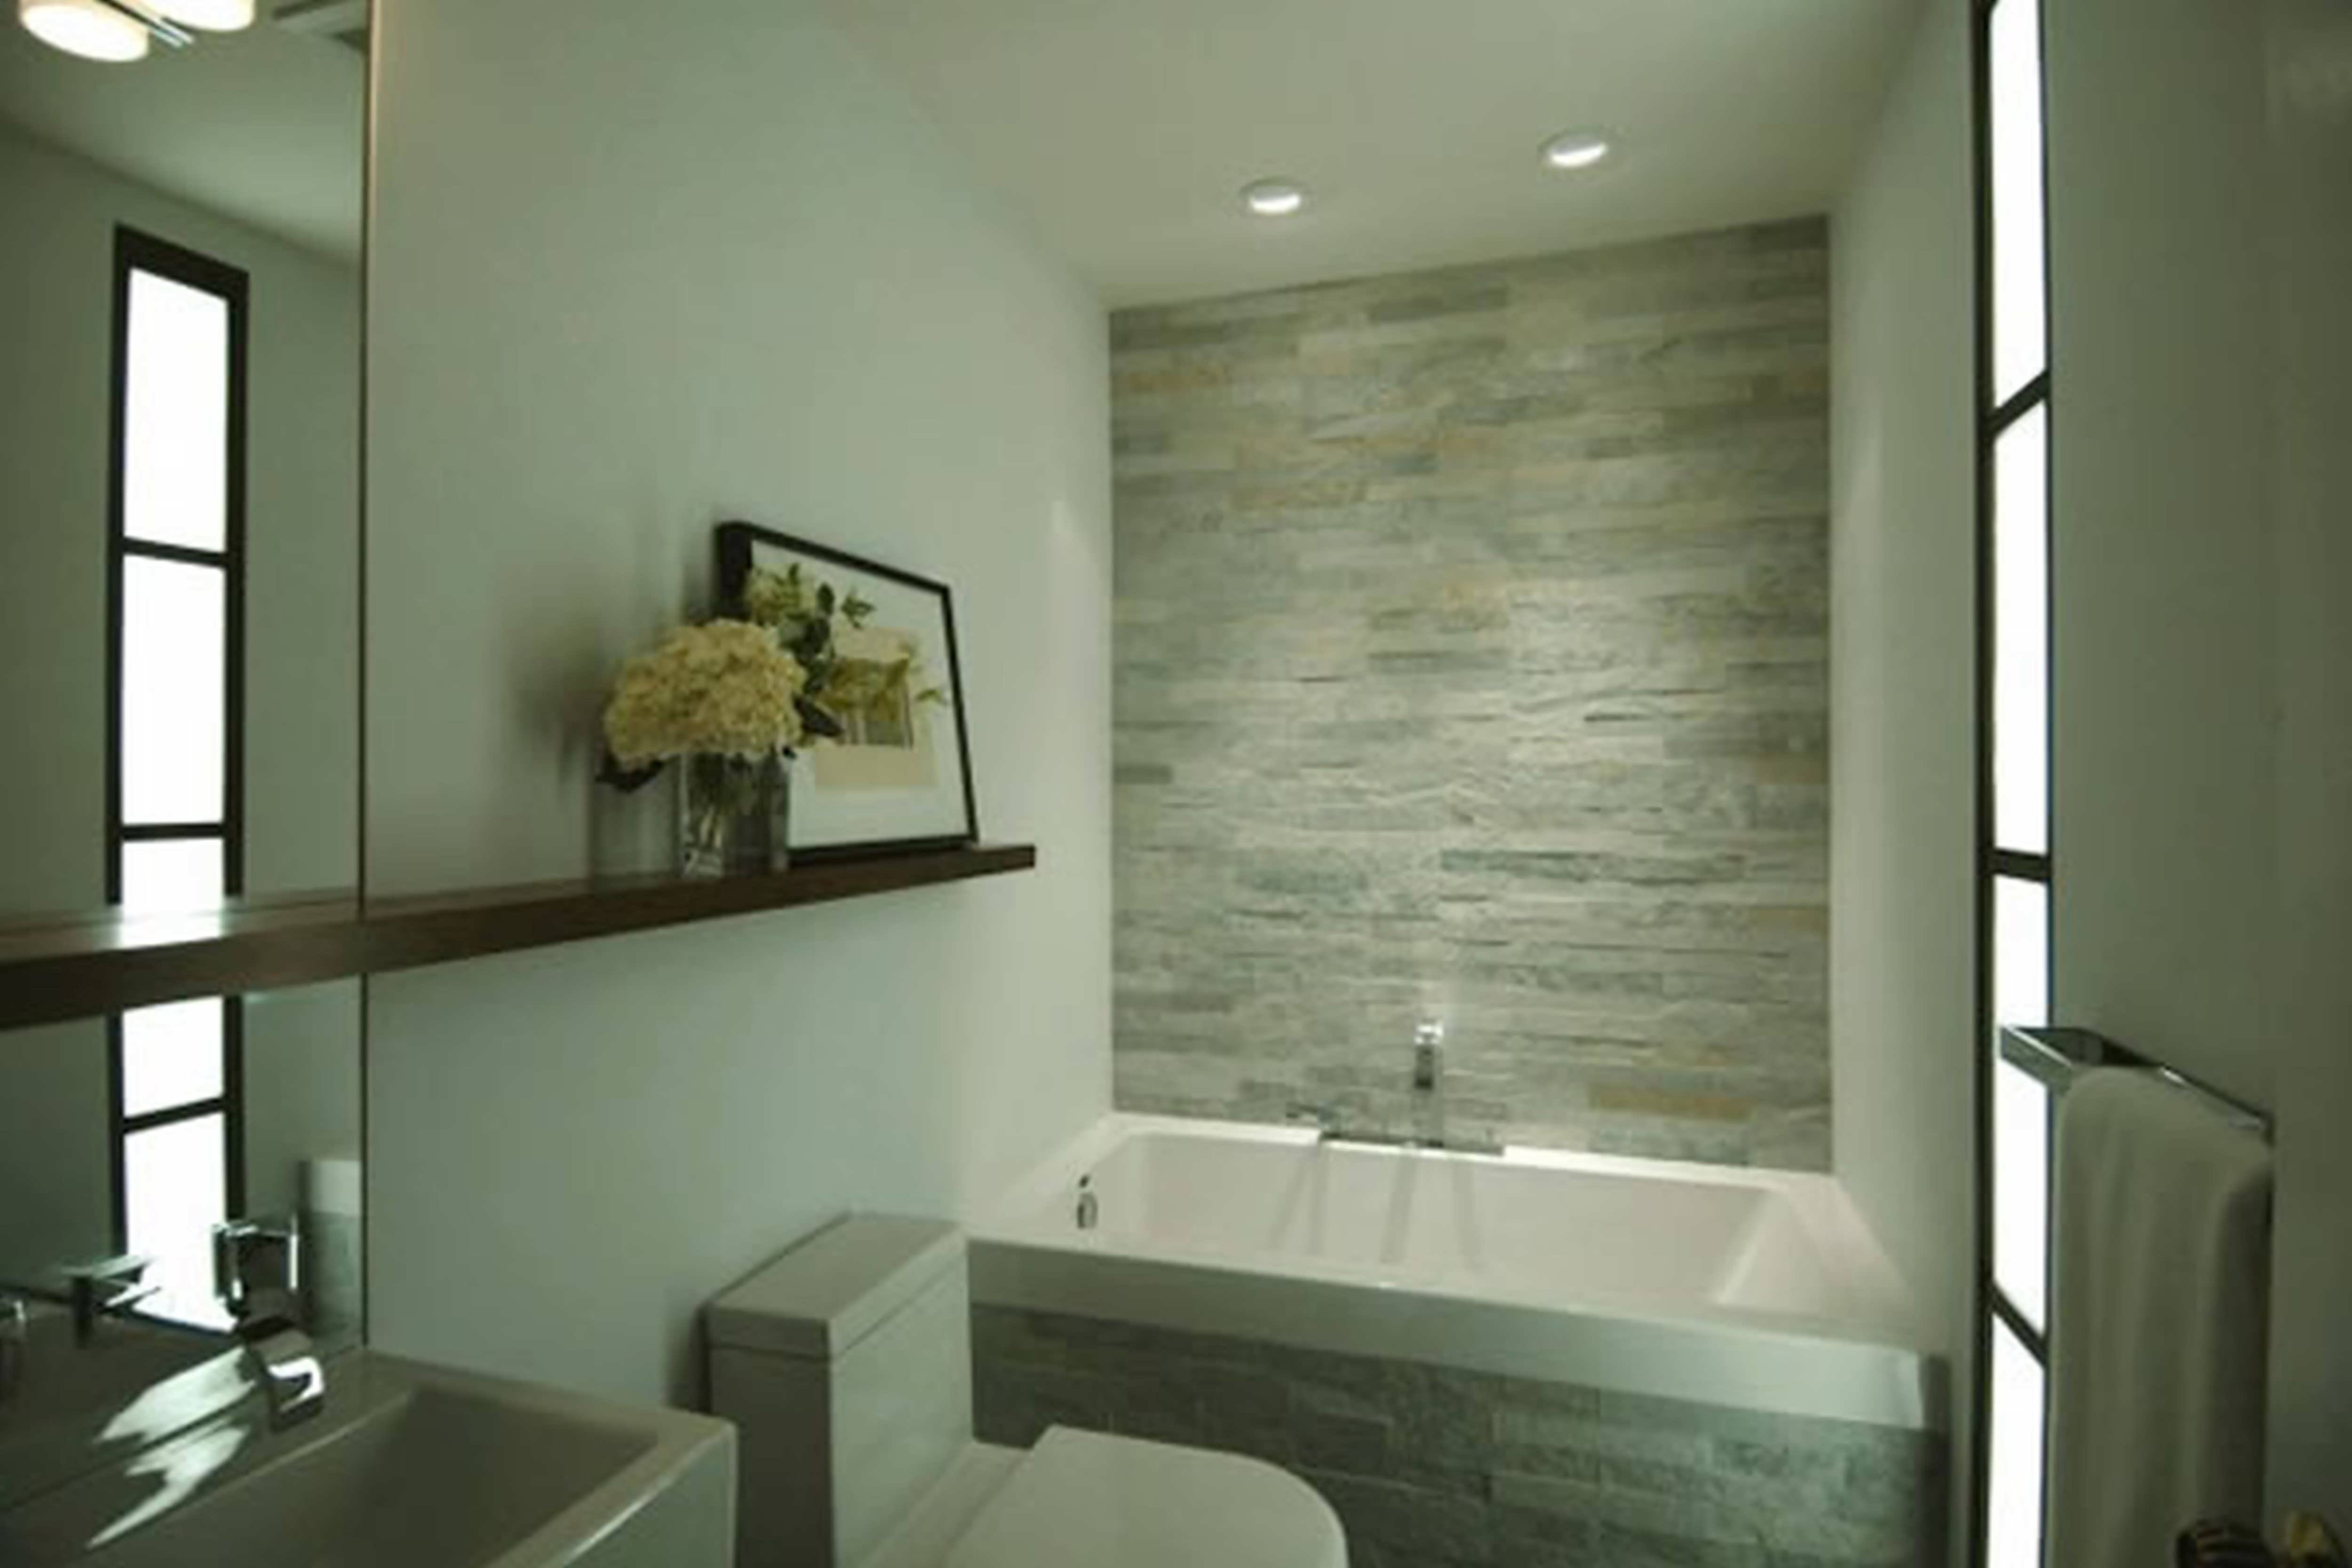 10 Fantastic Cheap Bathroom Remodel Ideas For Small Bathrooms bathroom fascinating cheap remodel ideas for inspiration small 2021